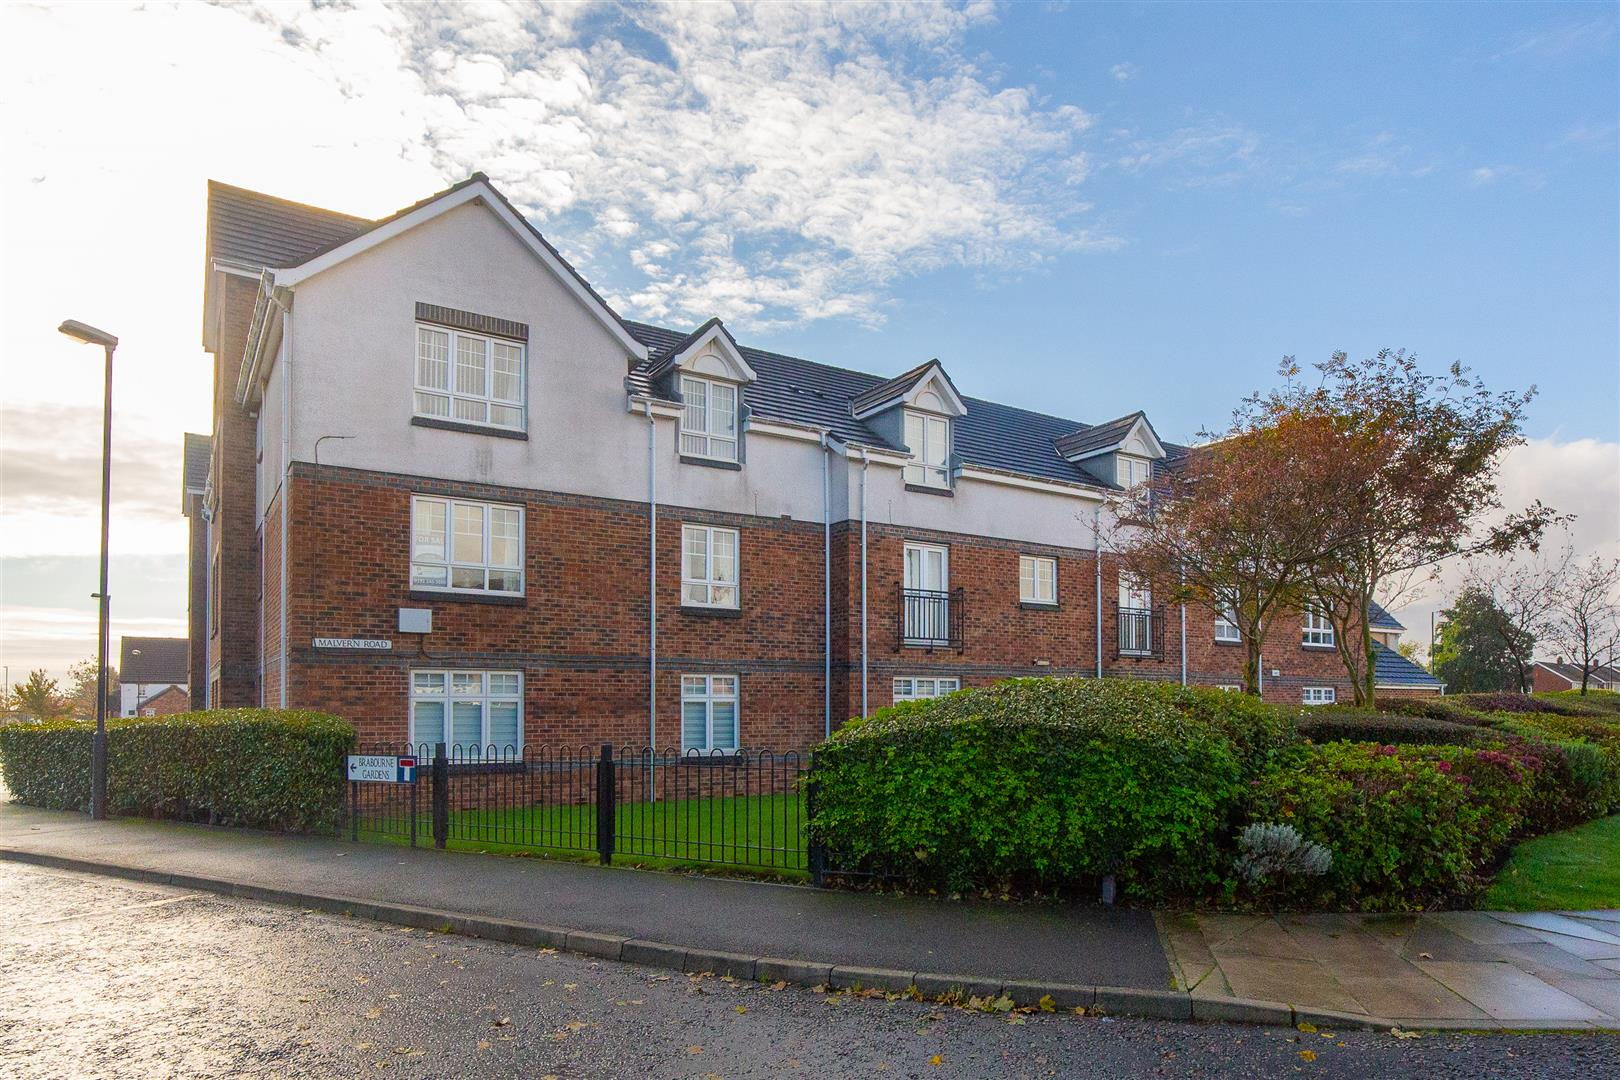 2 bed apartment for sale in Malvern Road, North Shields - Property Image 1